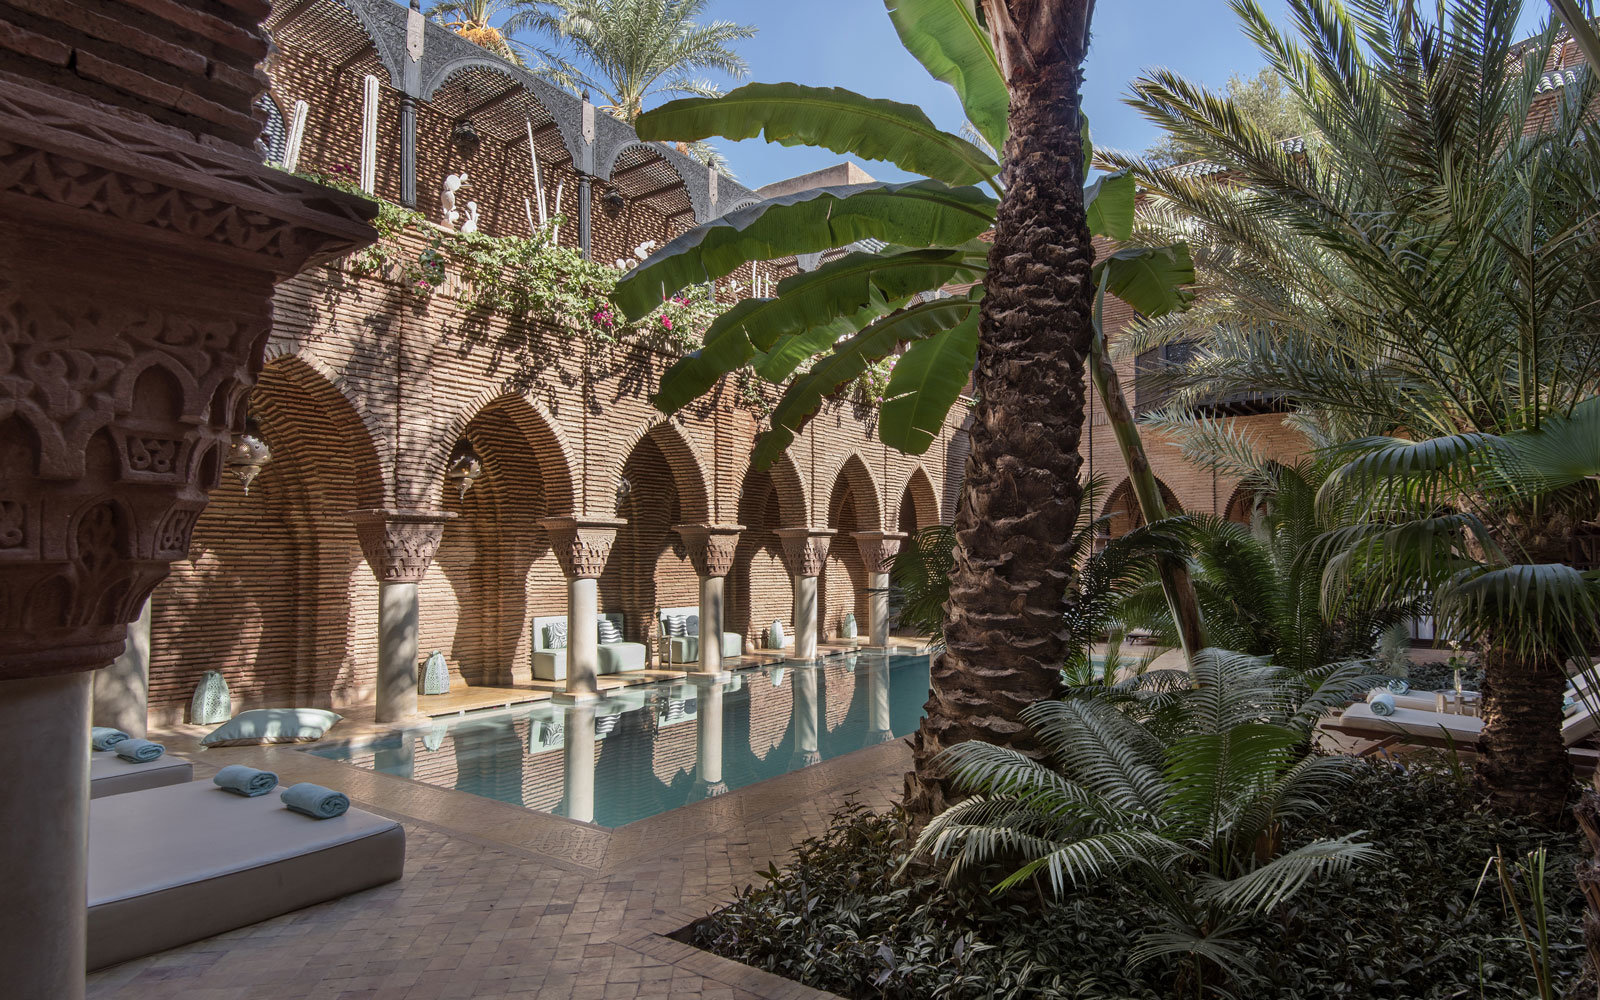 La Sultana Marrakech is a luxury historical hotel in UNESCO listed Medina.